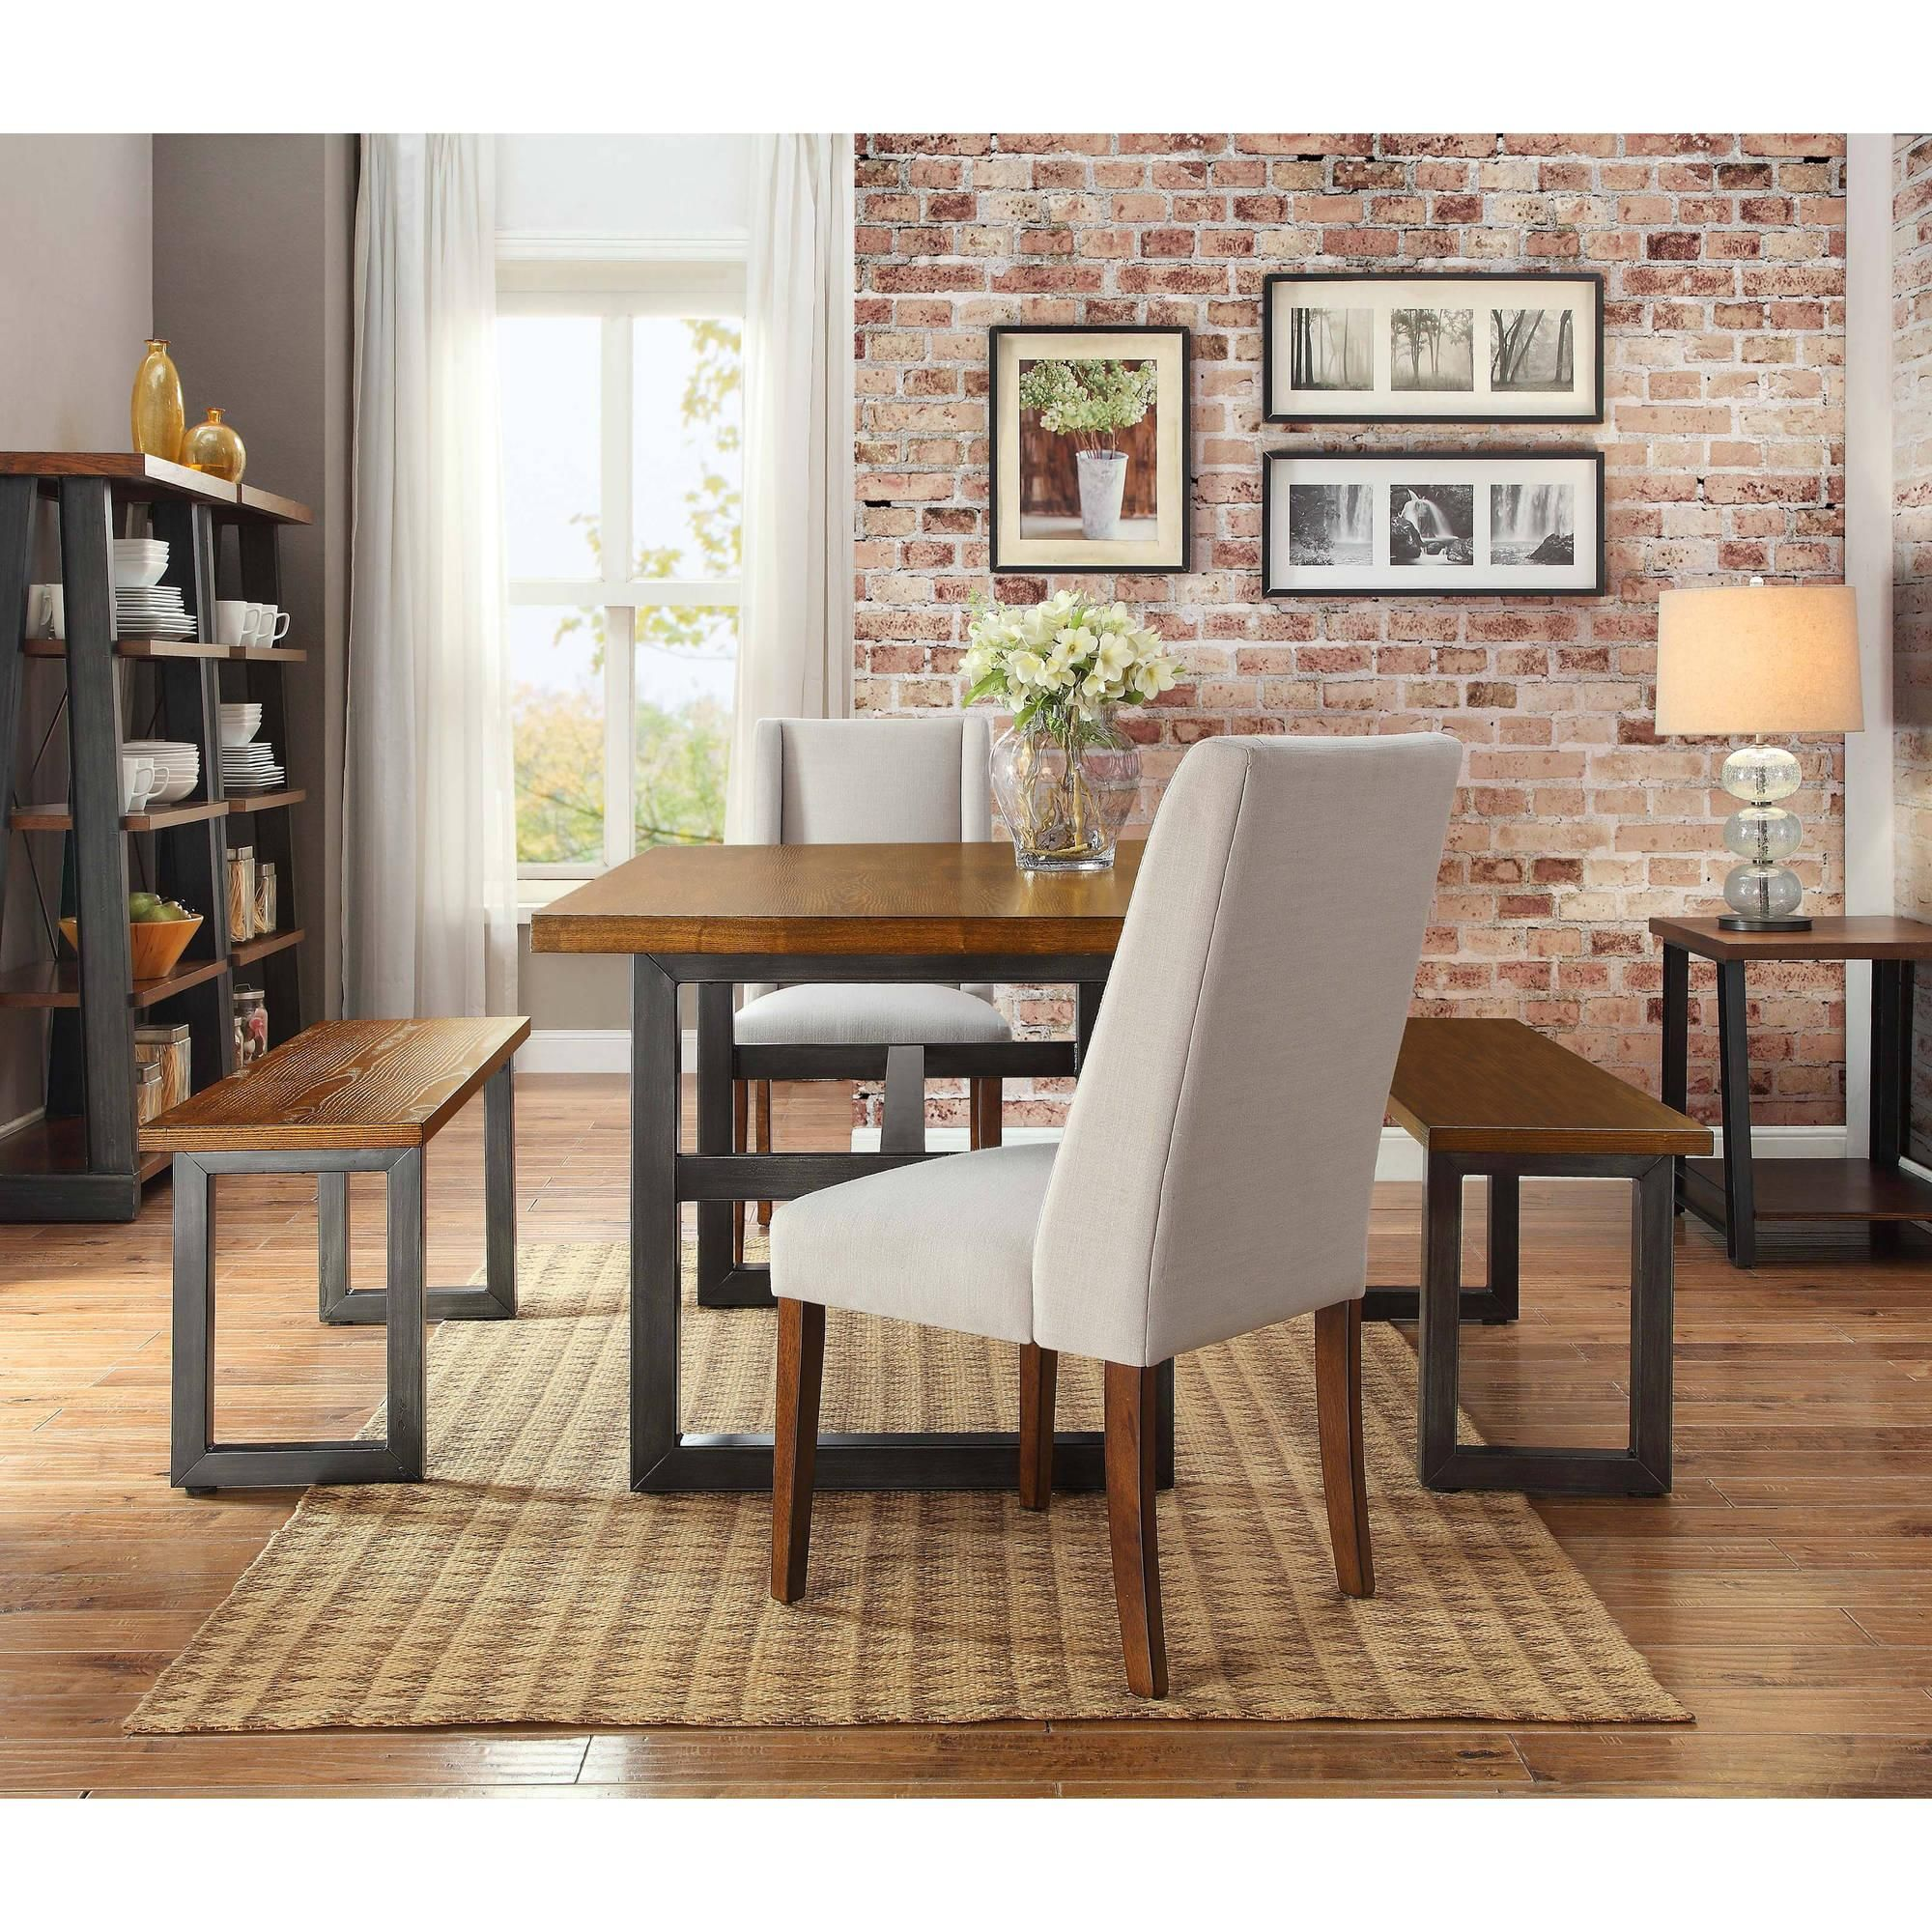 Better Homes and Gardens Mercer Dining Table Gardens Home and